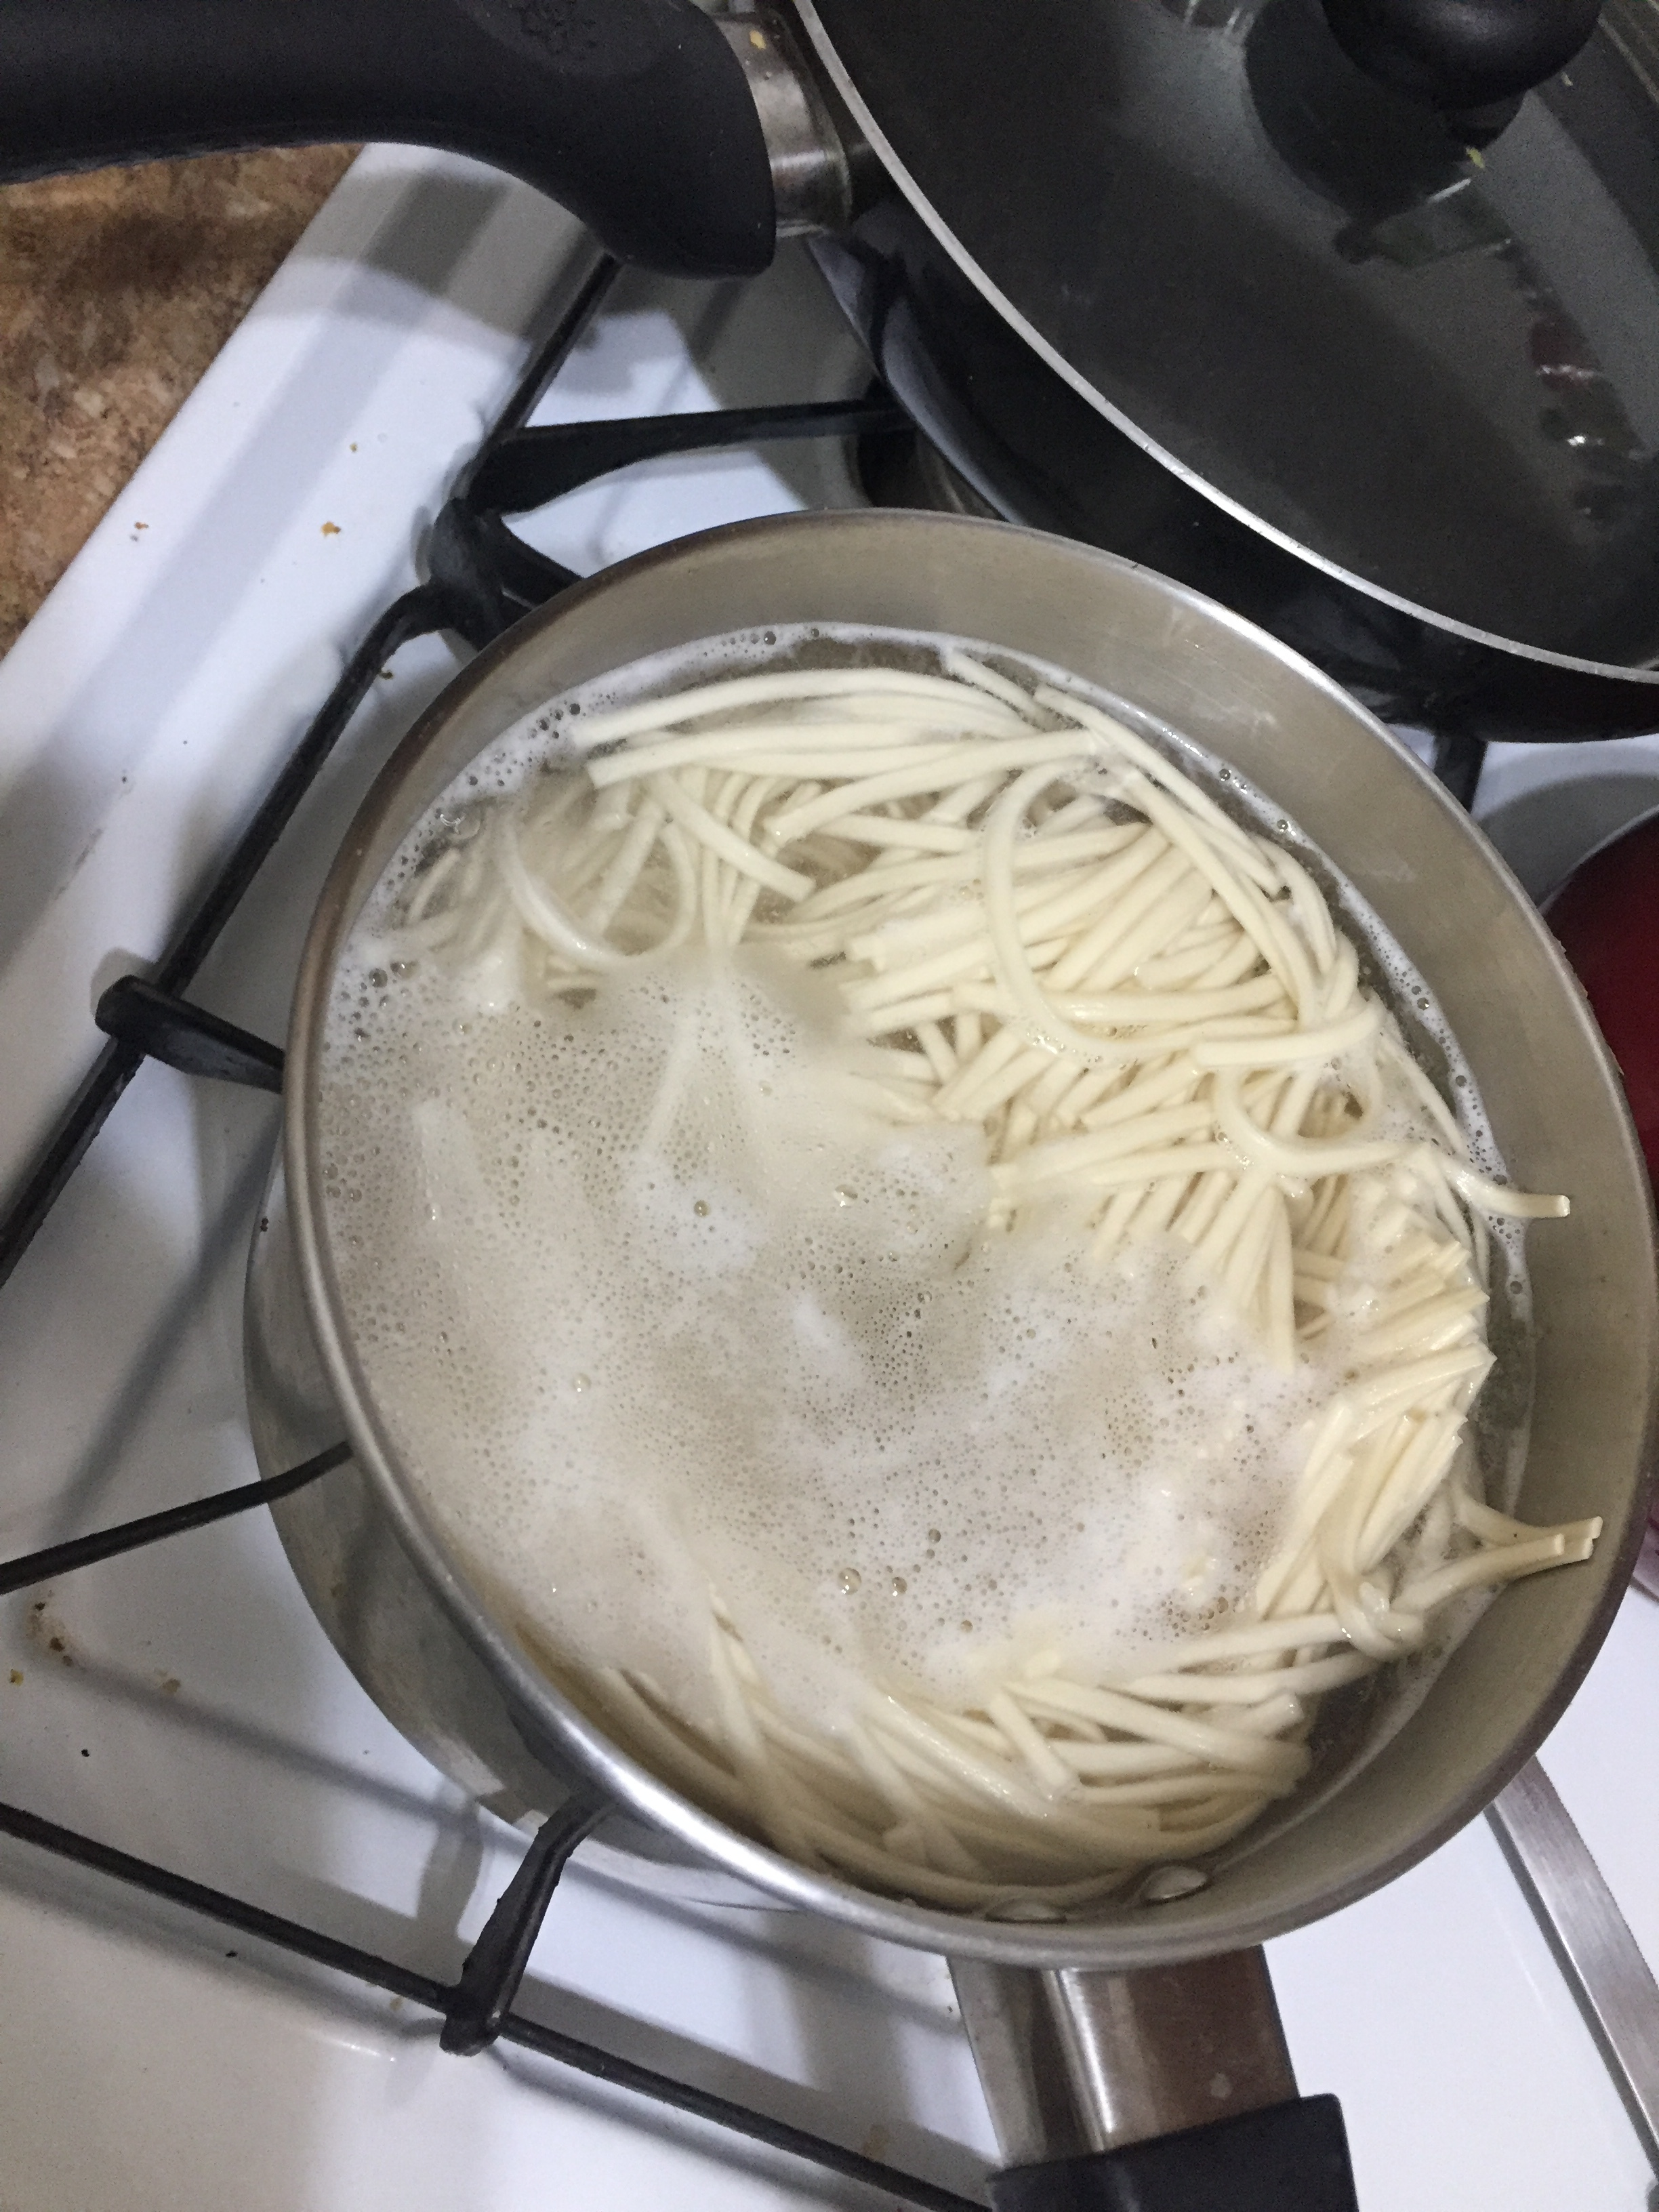 Bring 3 qt of water to boil and add the package of Kame noodles. When they rise to the top, cook for 9-11 more minutes and then drain. Rinse in cold water until noodles are room temperature-cool. Set aside